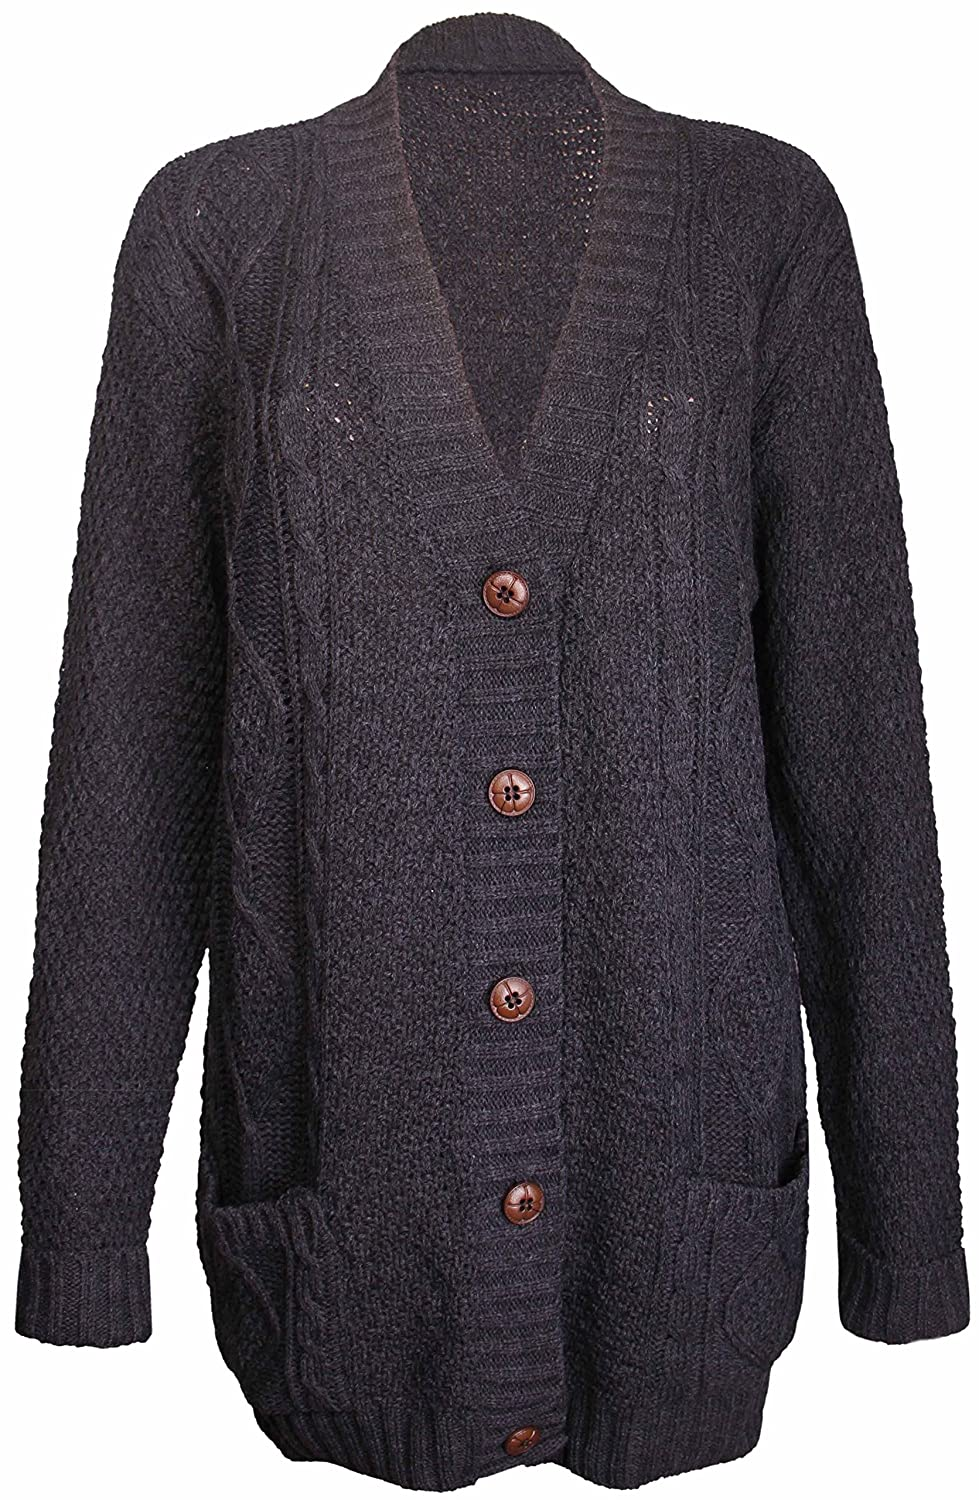 Cardigans. This season's variety of cardigans finds the open-front knit breaking free from the preppy associations that it intrinsically calls to mind.